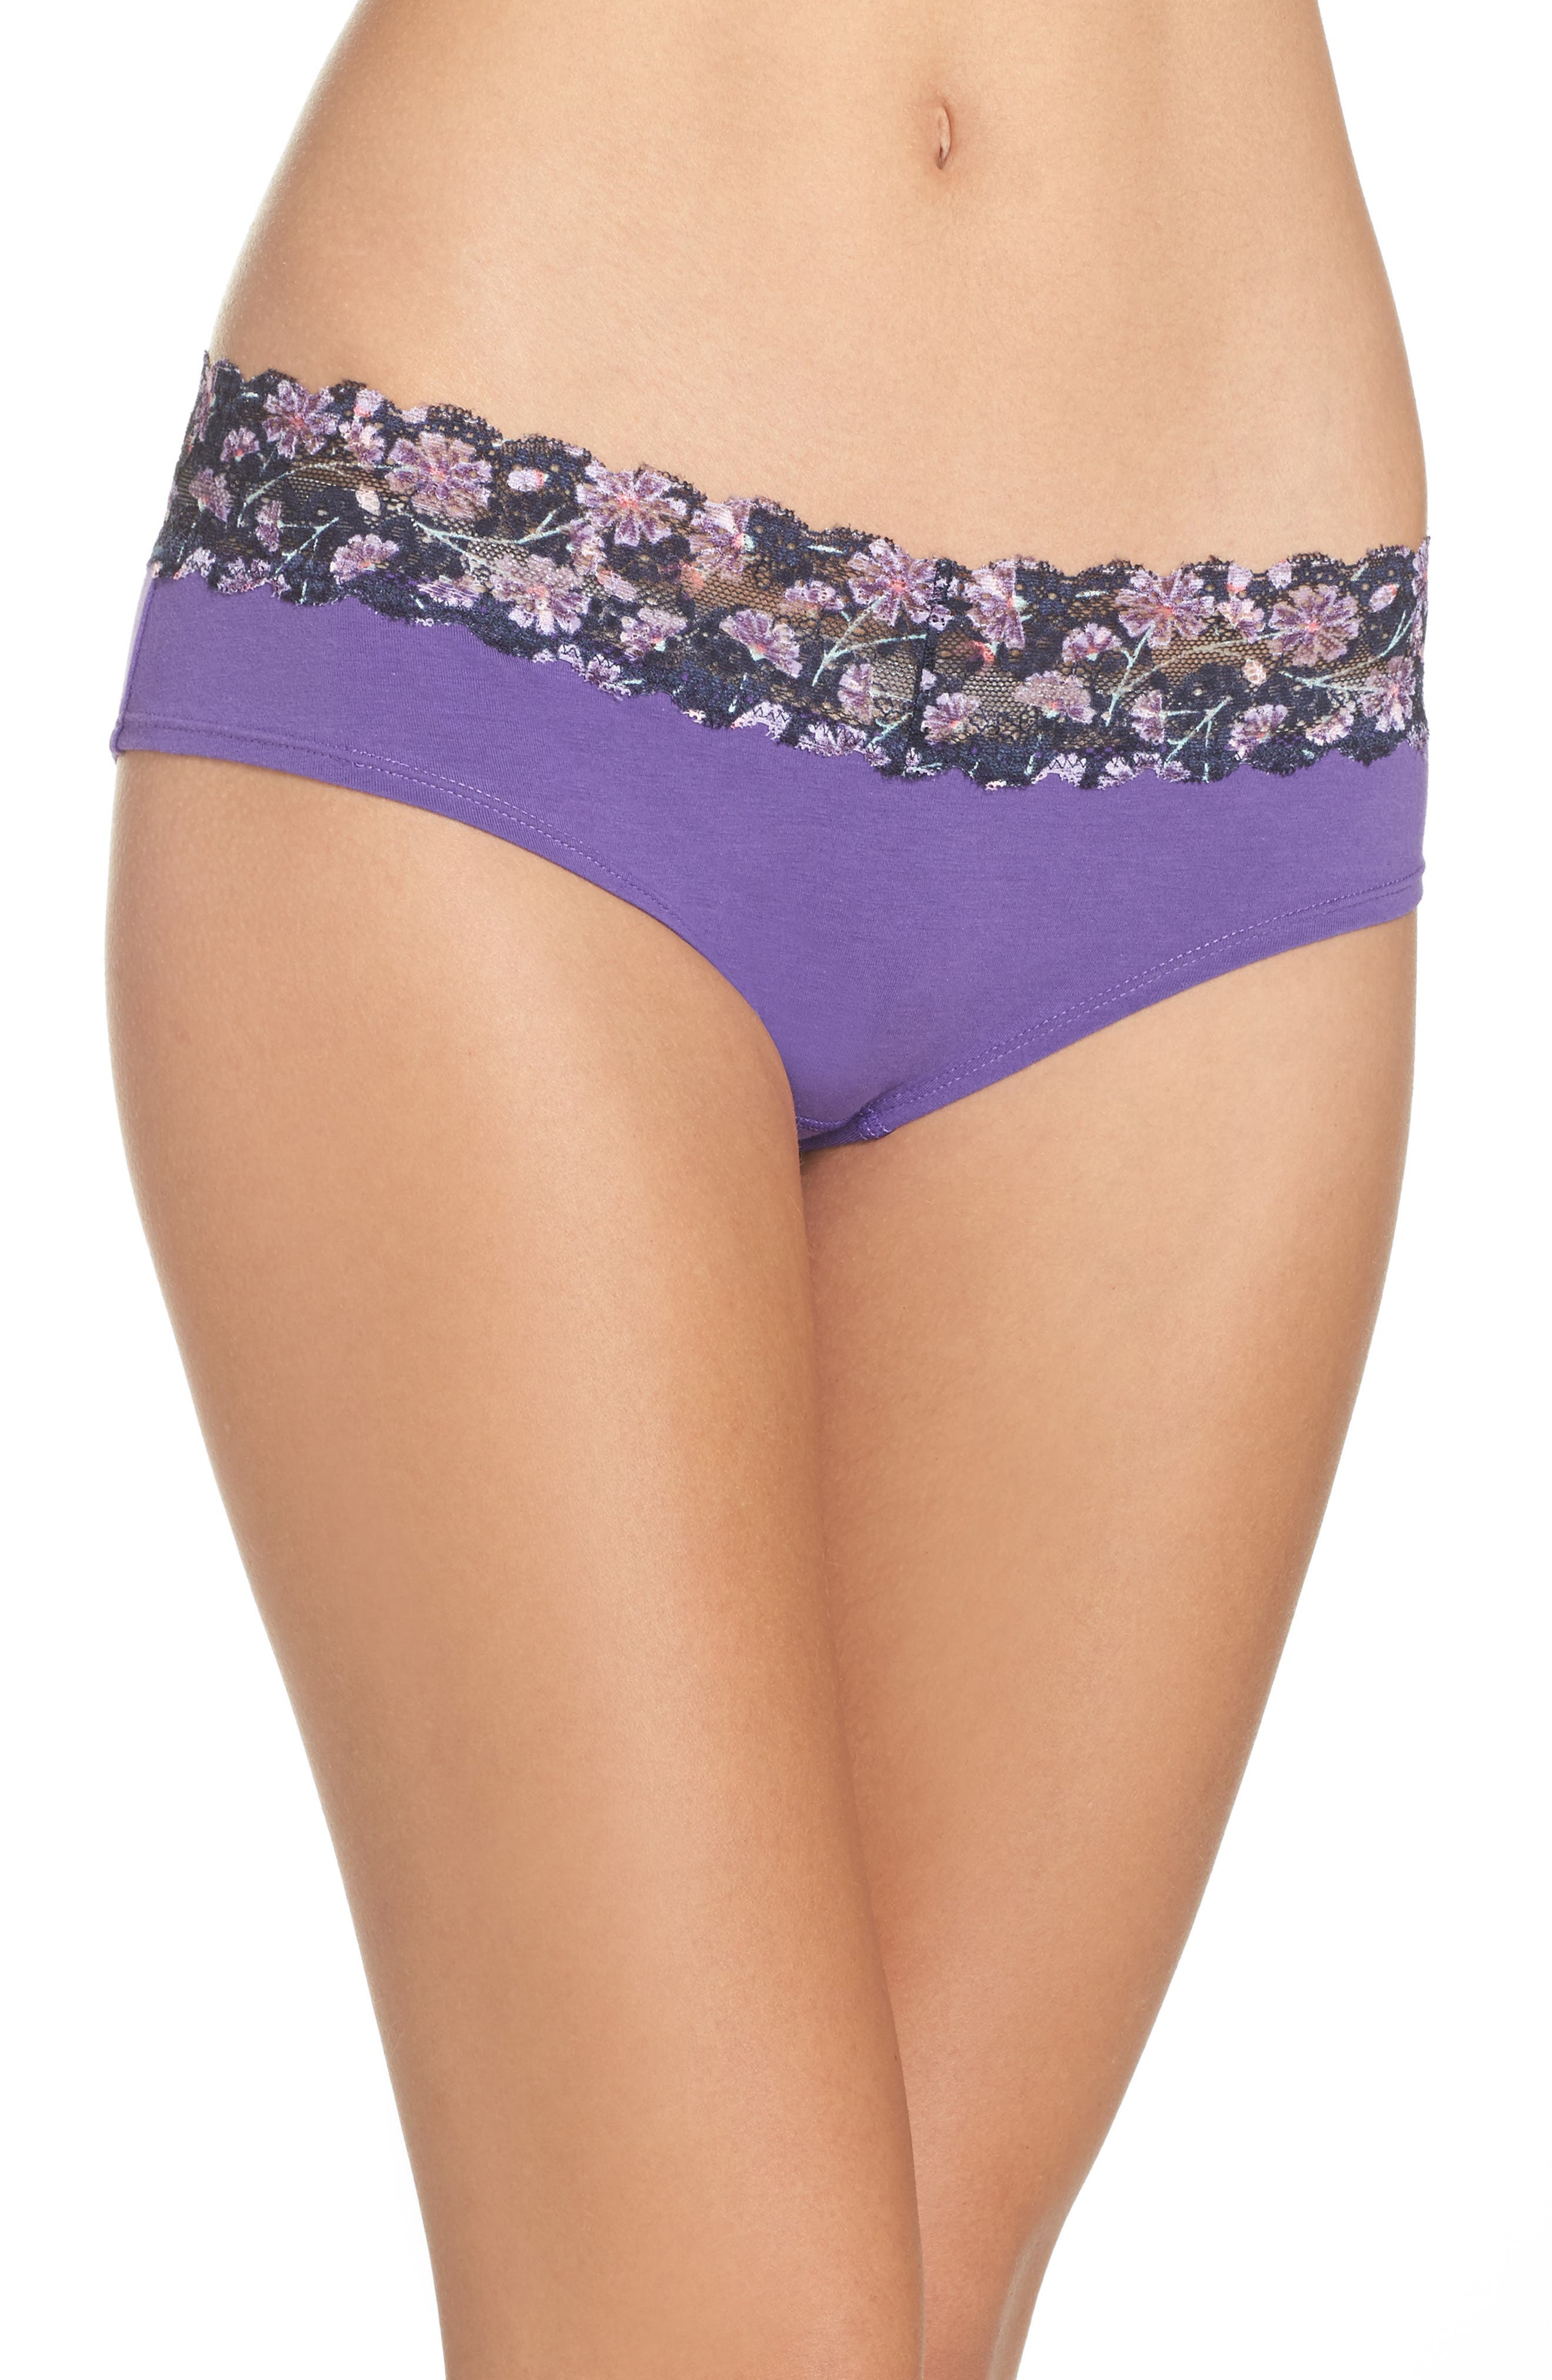 h.dew 'Becca' Hipster Briefs (5 for $30)